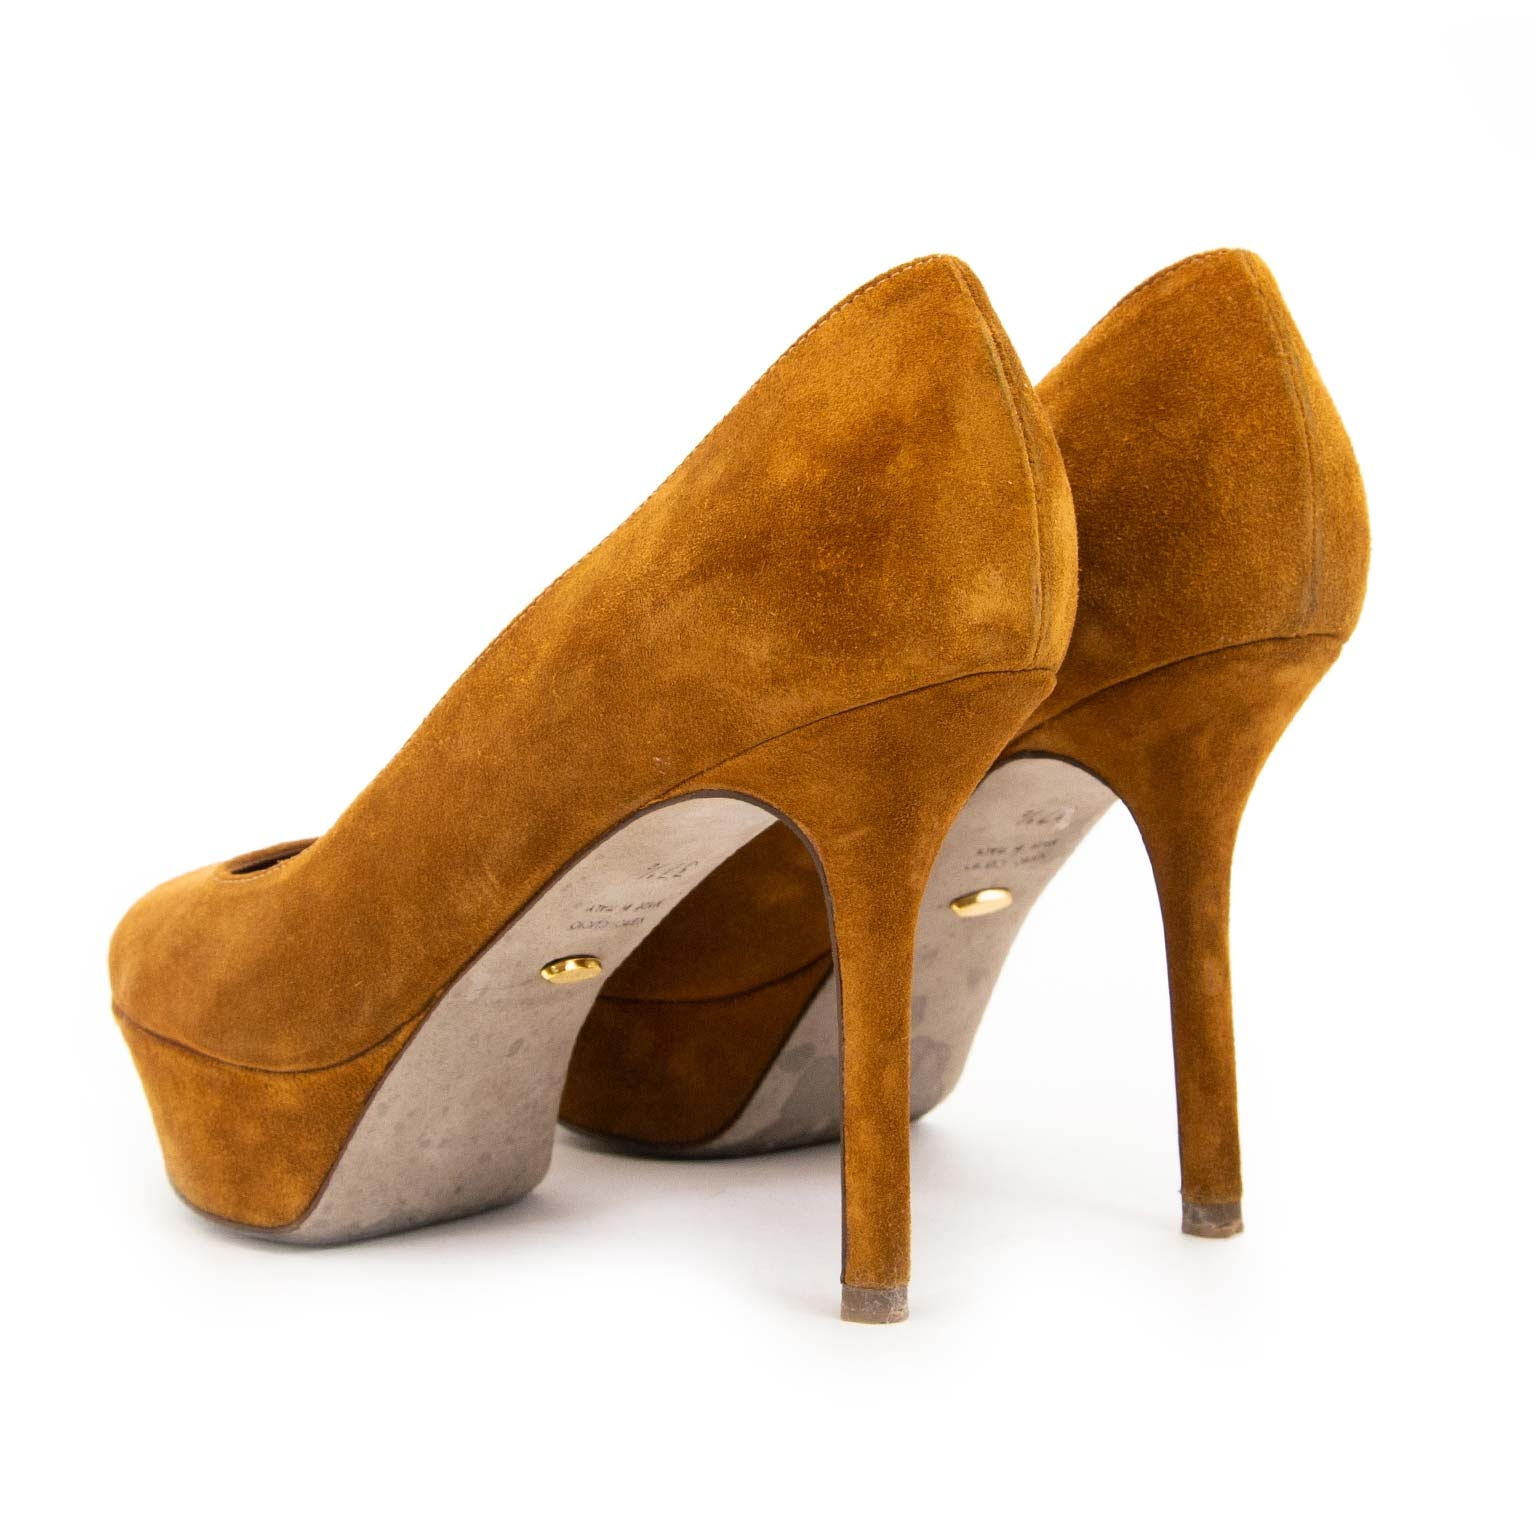 sergio rossi camel suede platform pumps now for sale at labellov vintage fashion webshop belgium